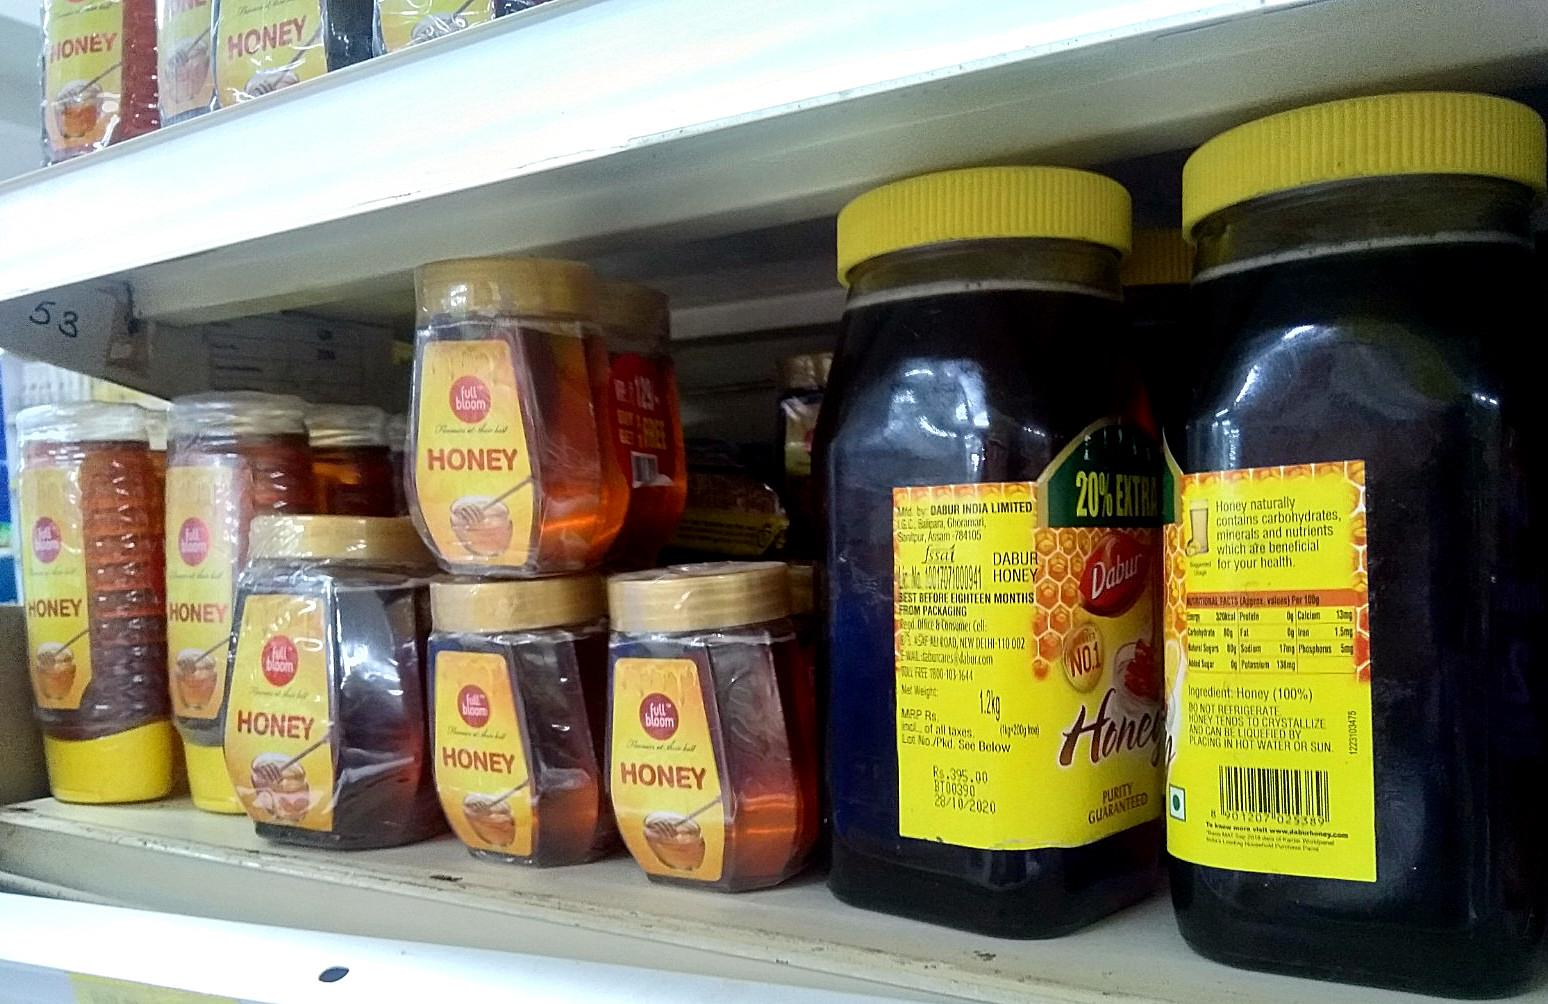 What's The Buzz About Honey?